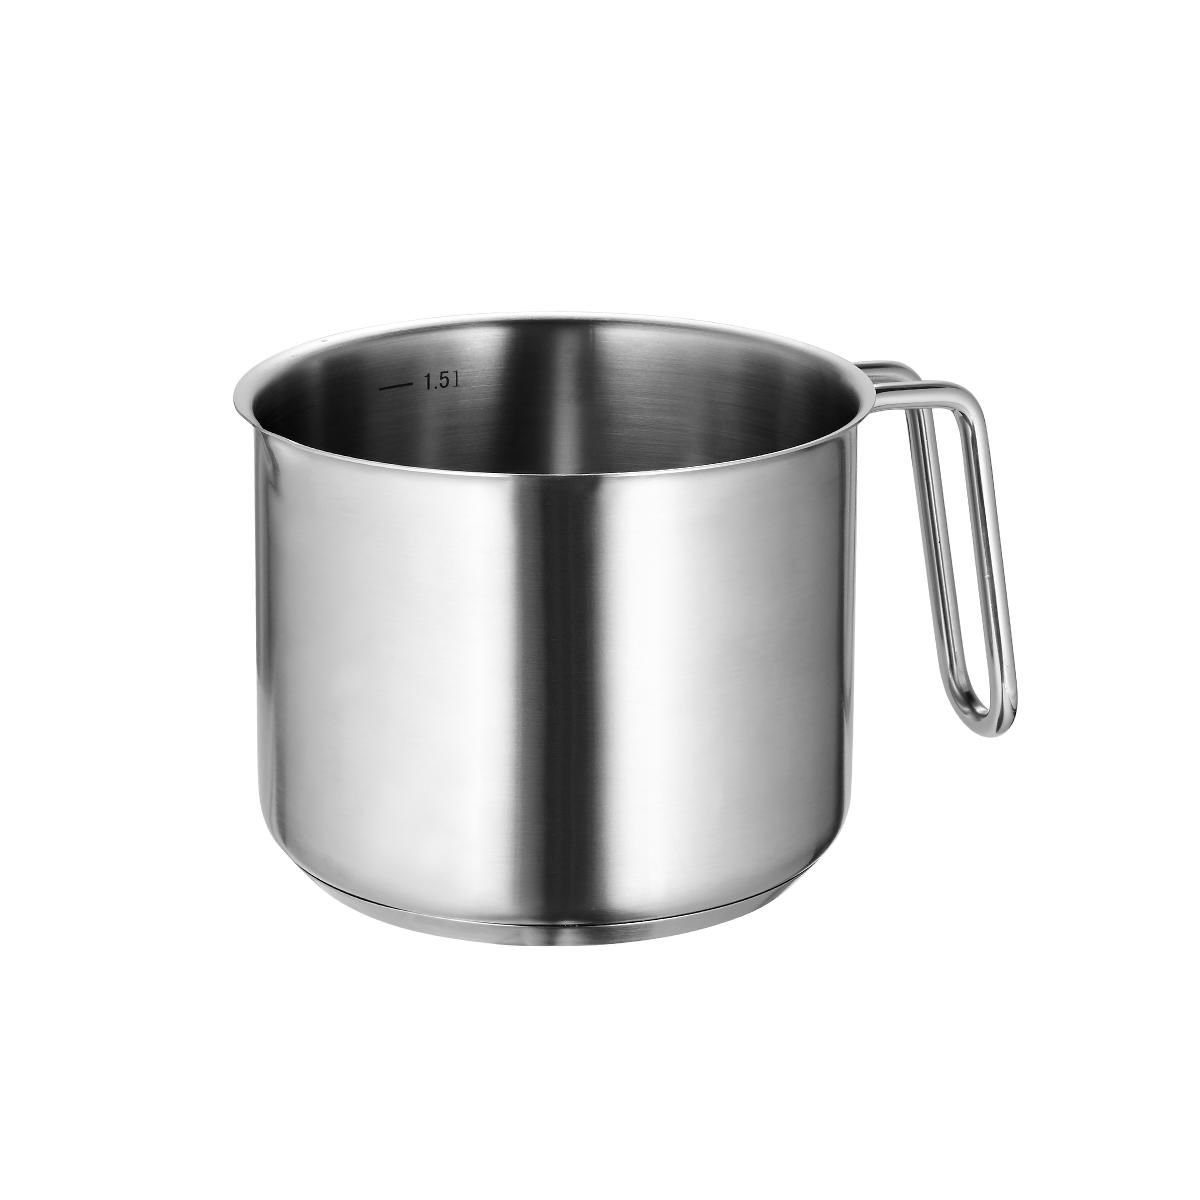 BUTLERS SOUL COOKING »Milchtopf Ø 14 cm«